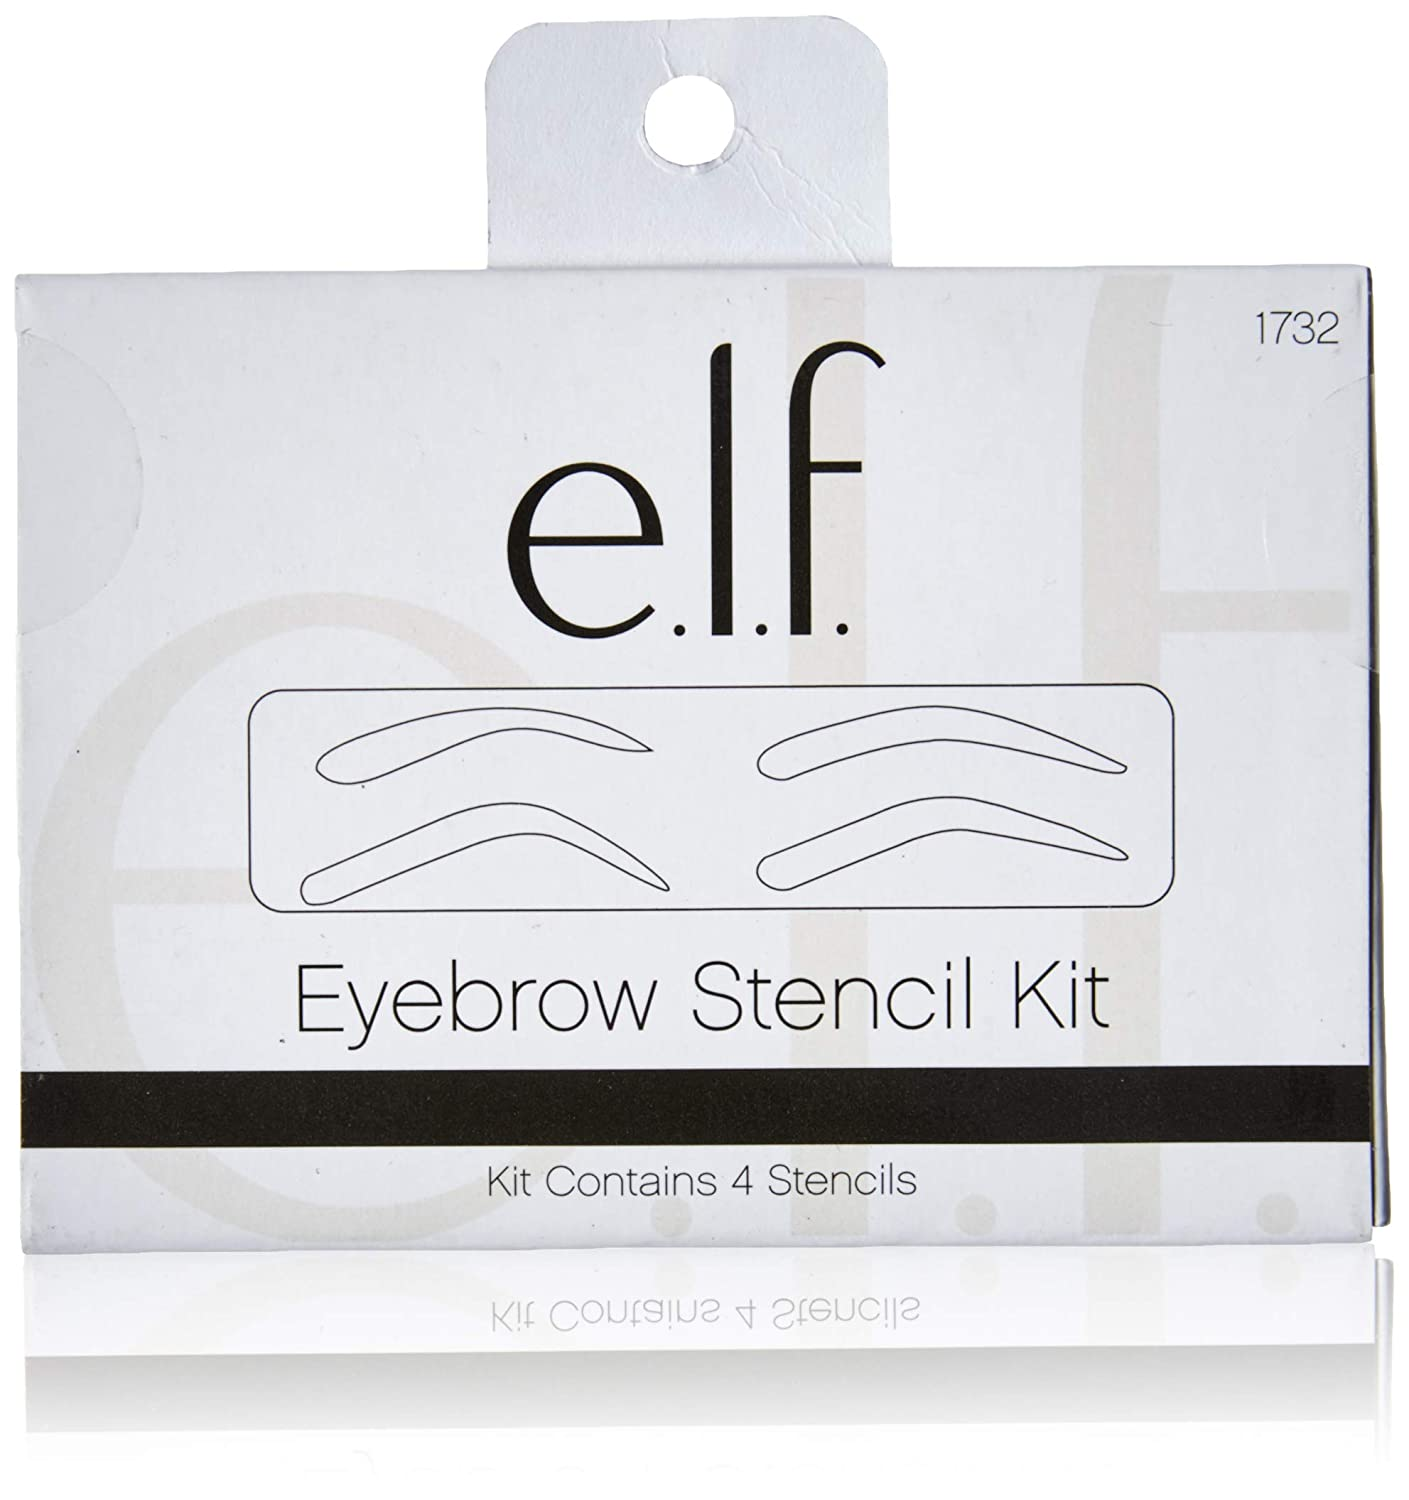 graphic relating to Printable Eyebrow Stencil identify elf Cosmetics Eyebrow Stencil Package for Correctly Fashioned Brows, Consists of 4 Reusable Stencils